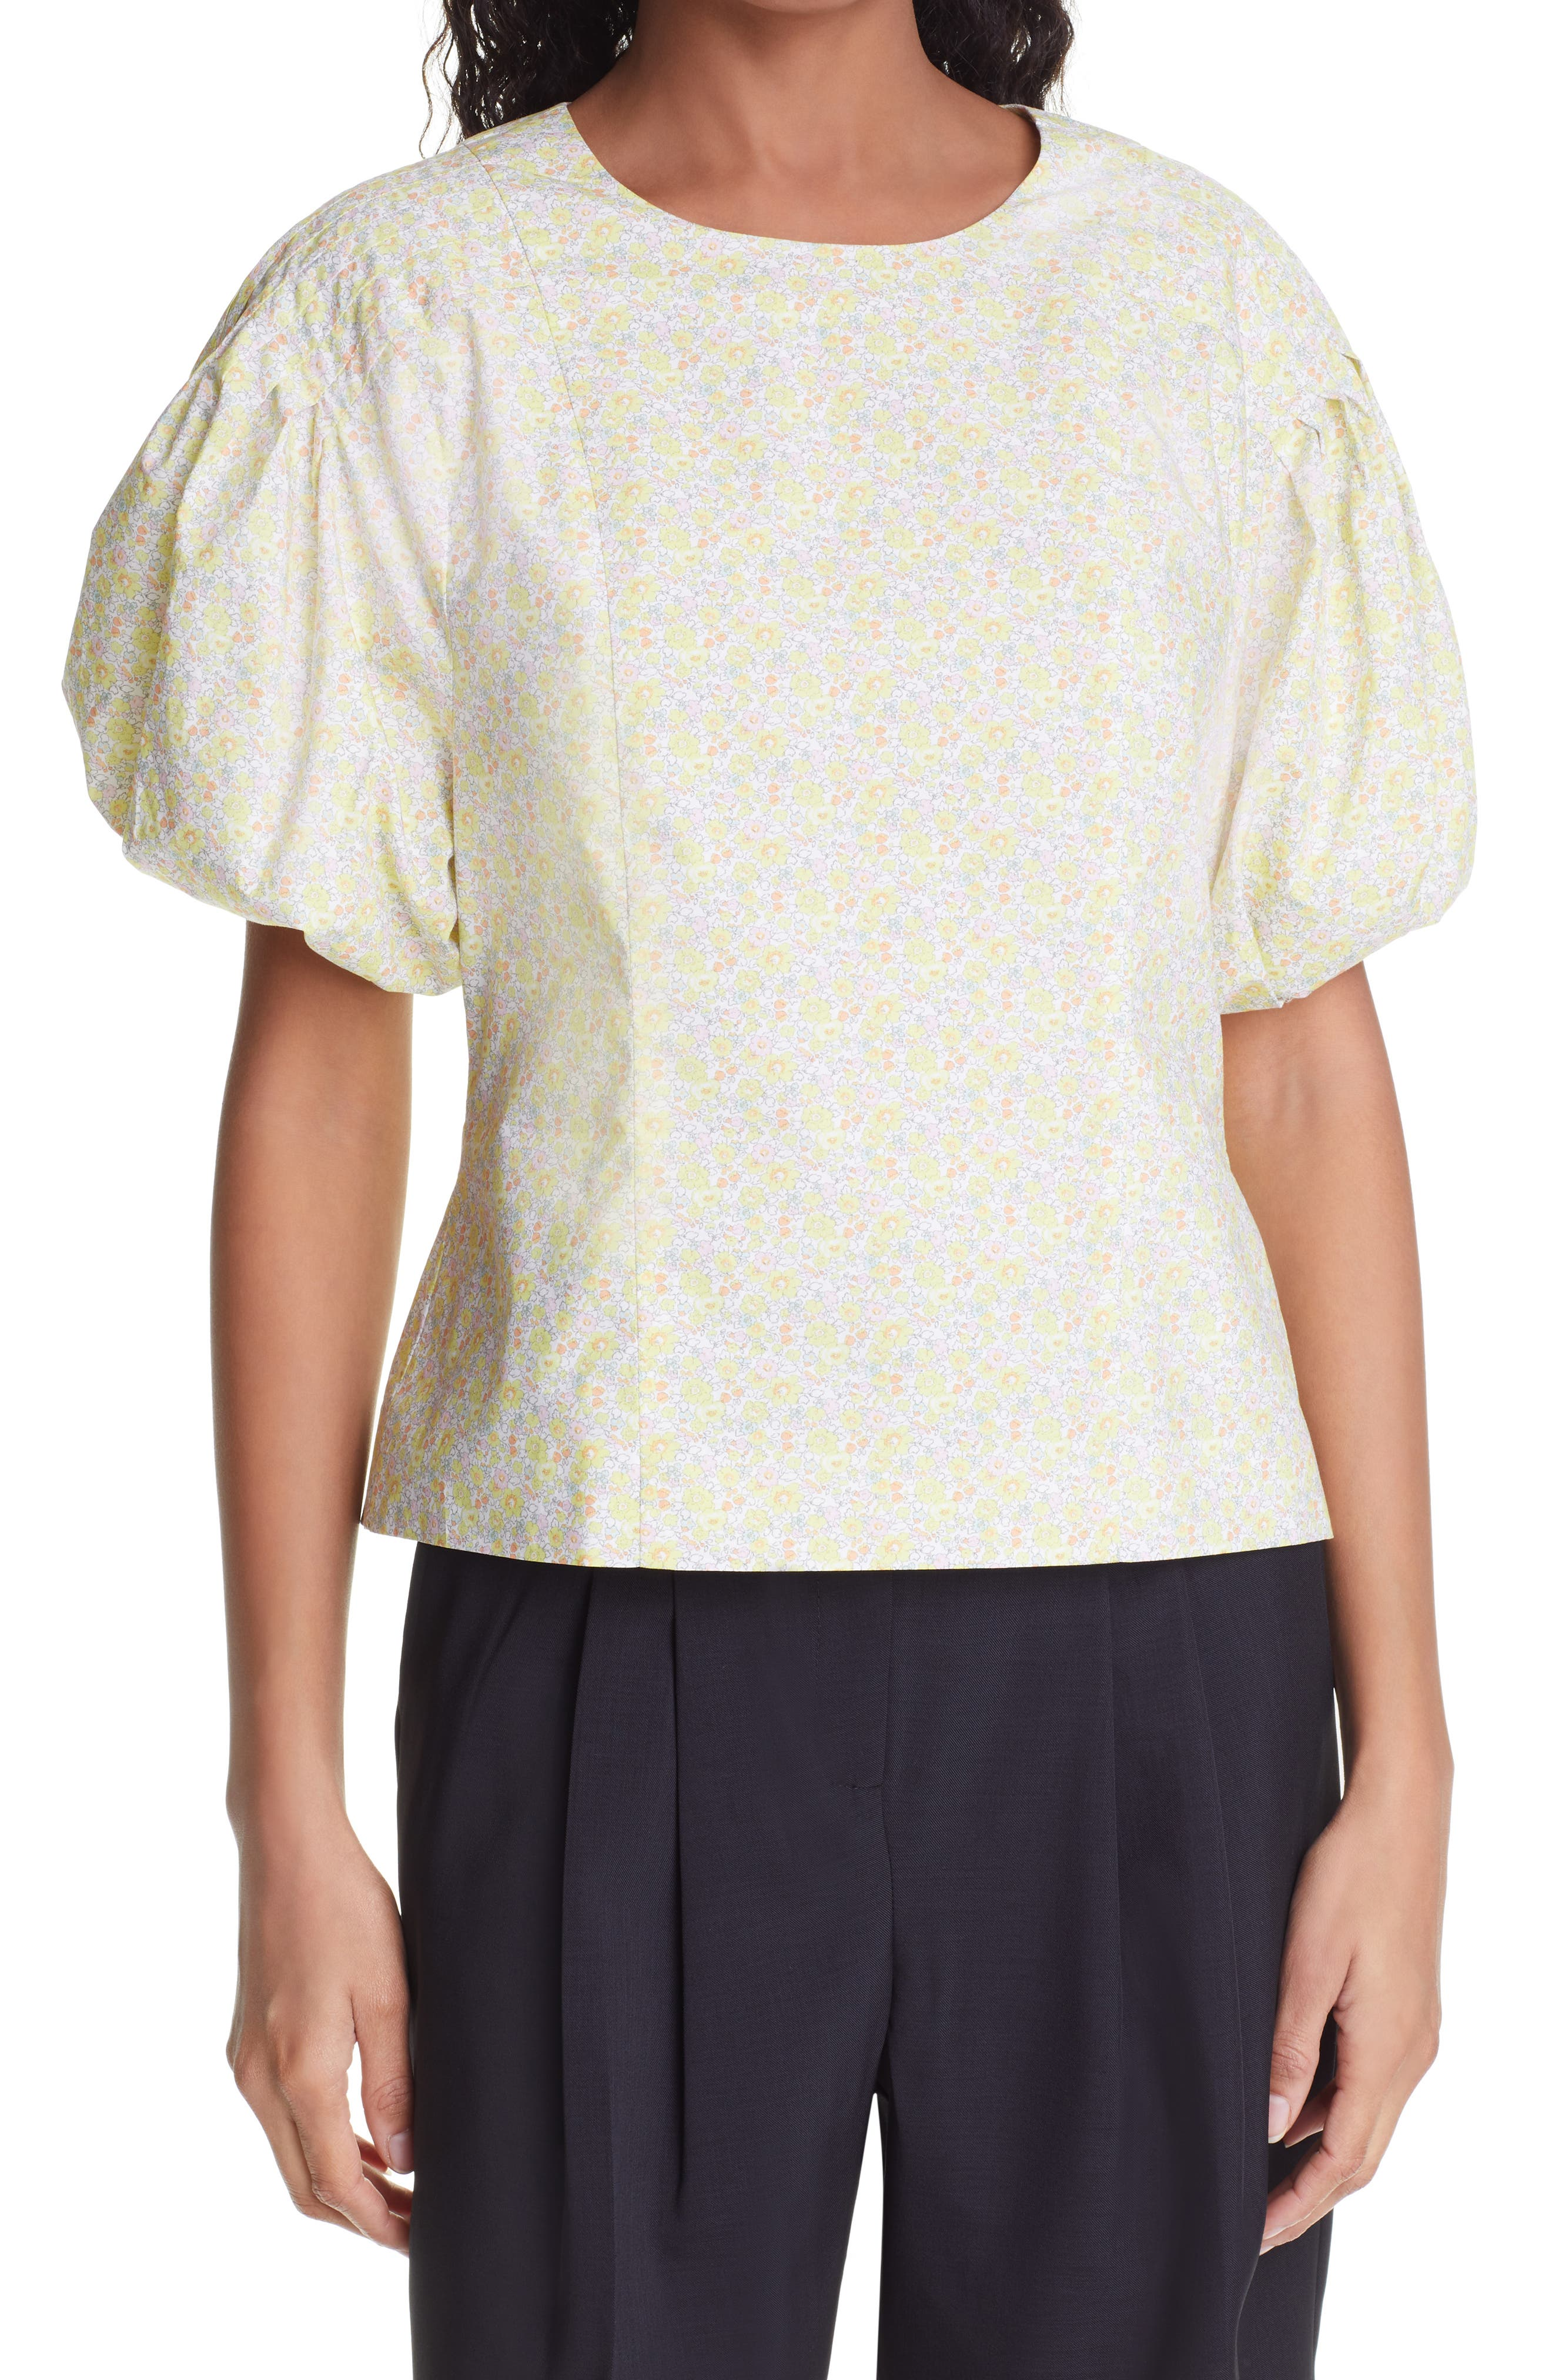 Bell Floral Ditsy Organic Cotton Top